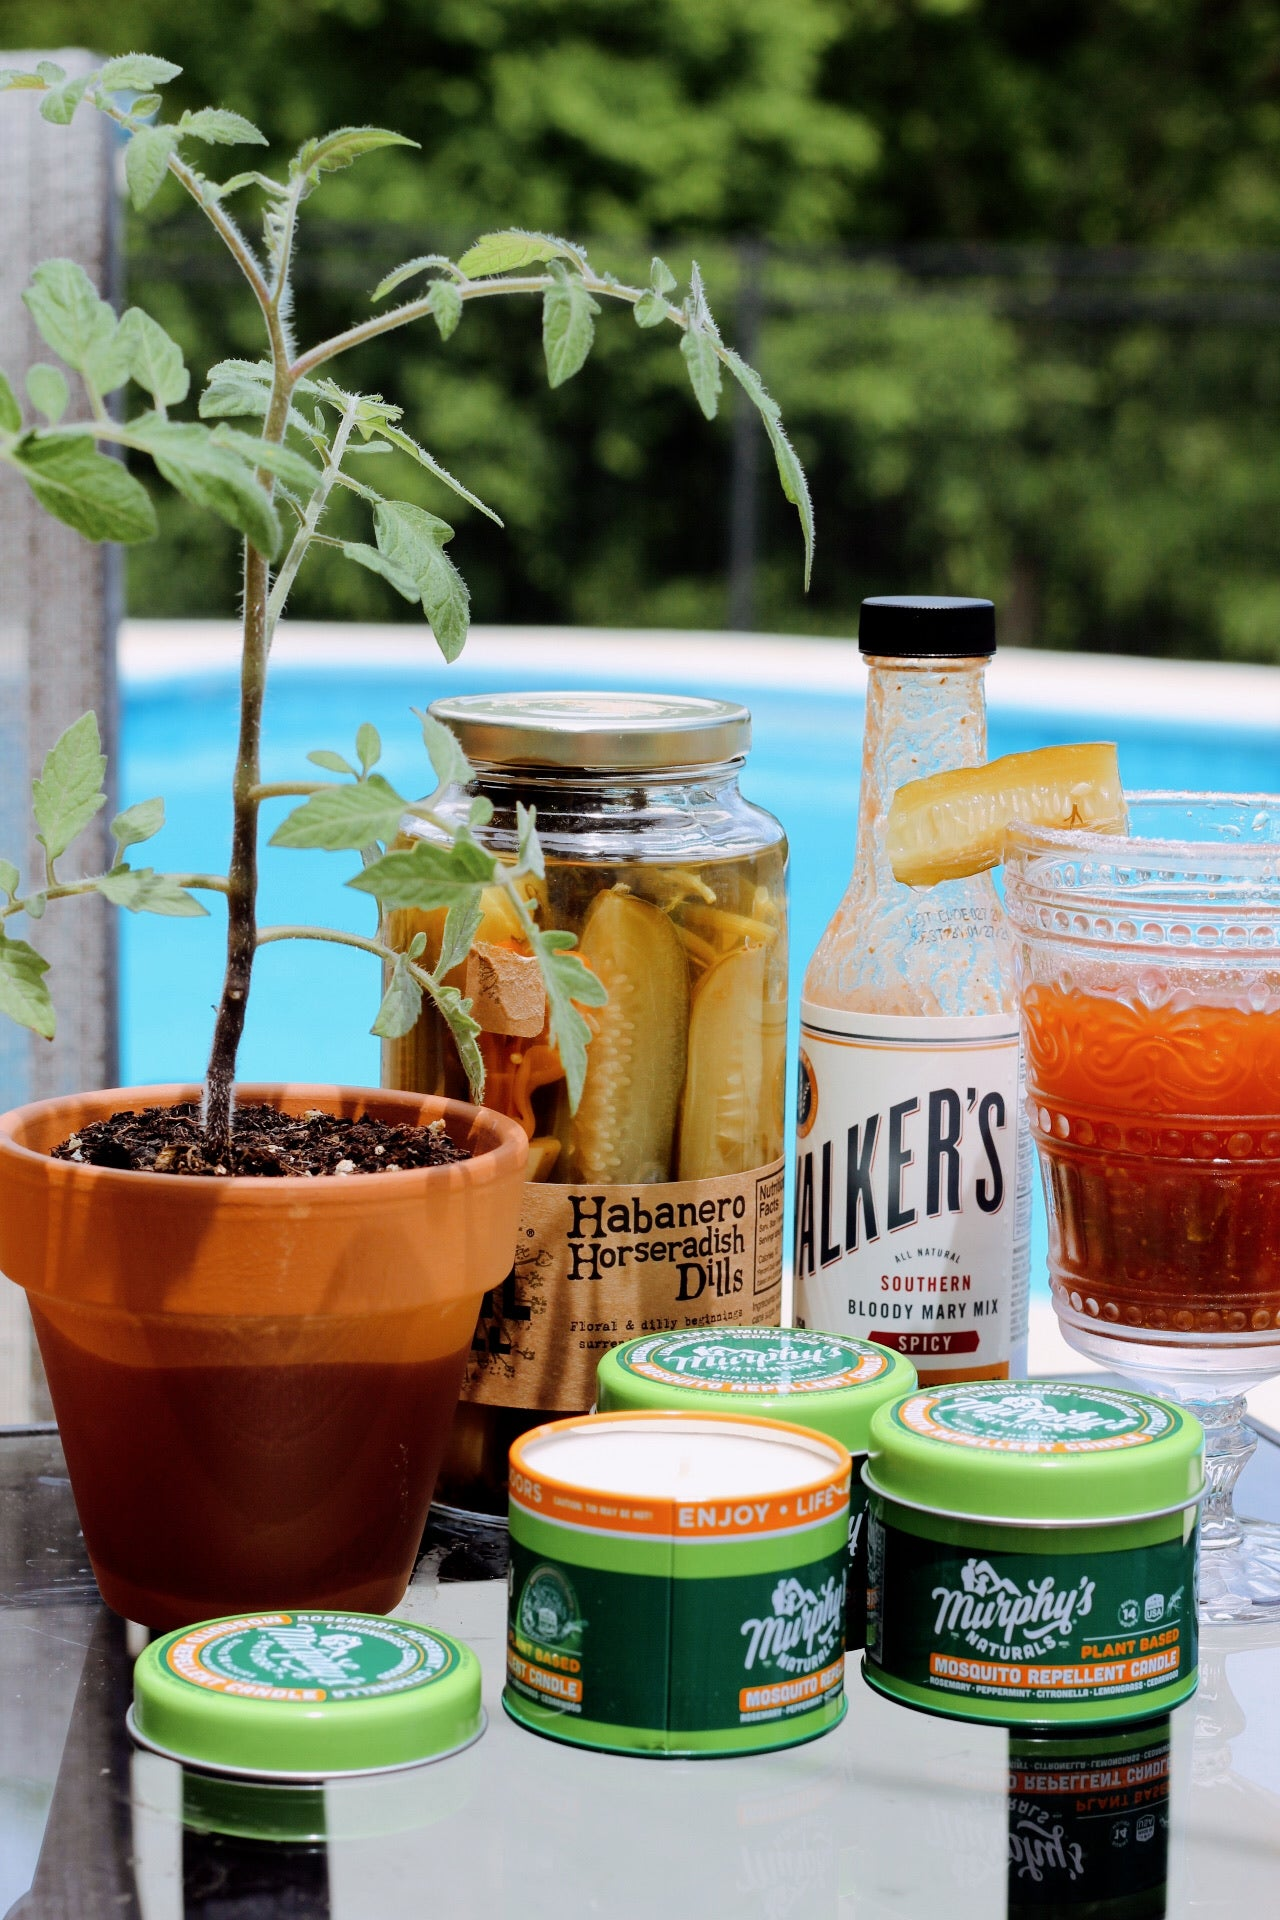 ZuZu's x City Supply Fayetteville - Bloody Mary Bundle | this bundle includes a tomato plant and Murphy's Naturals citronella candle set from ZuZu's Petals, along with Walker's Bloody Mary Mix and Homestyle Spicy Pickles.